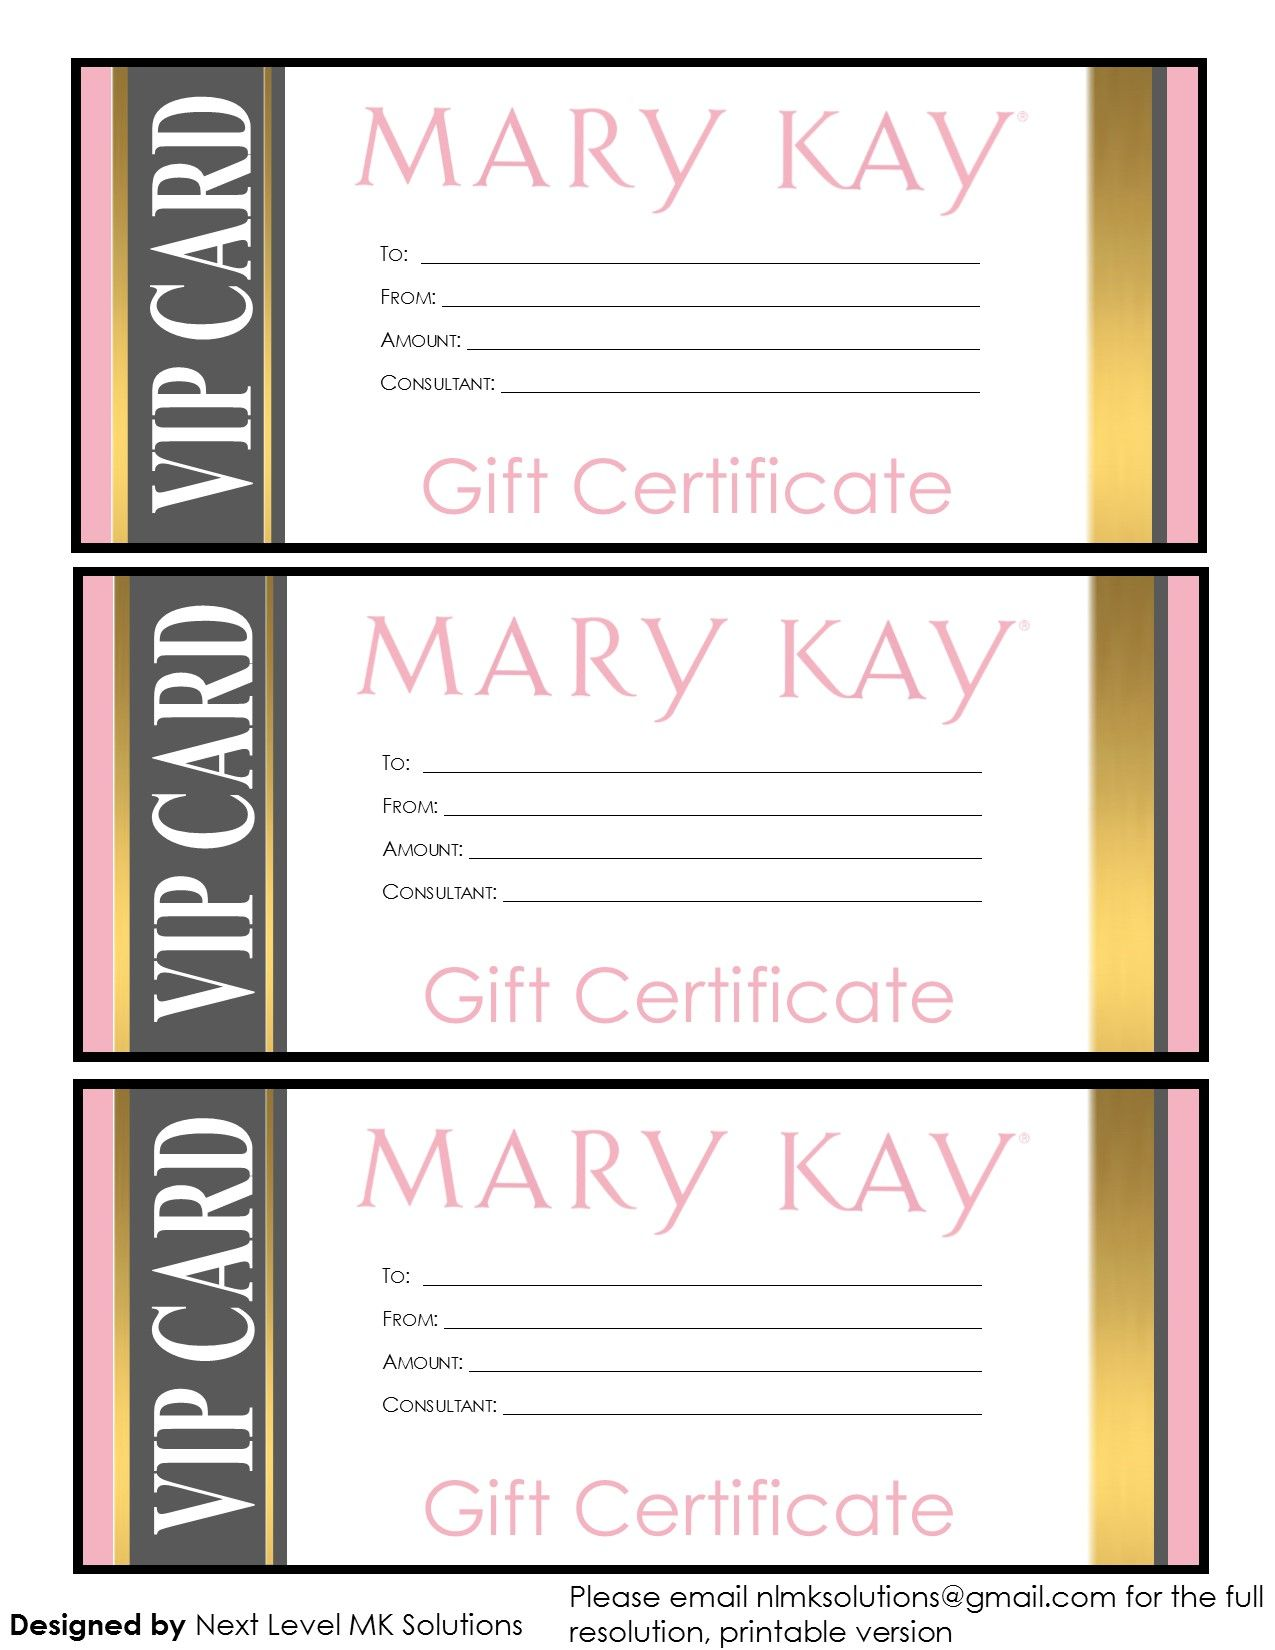 Mary Kay gift certificates please email for the full pdf